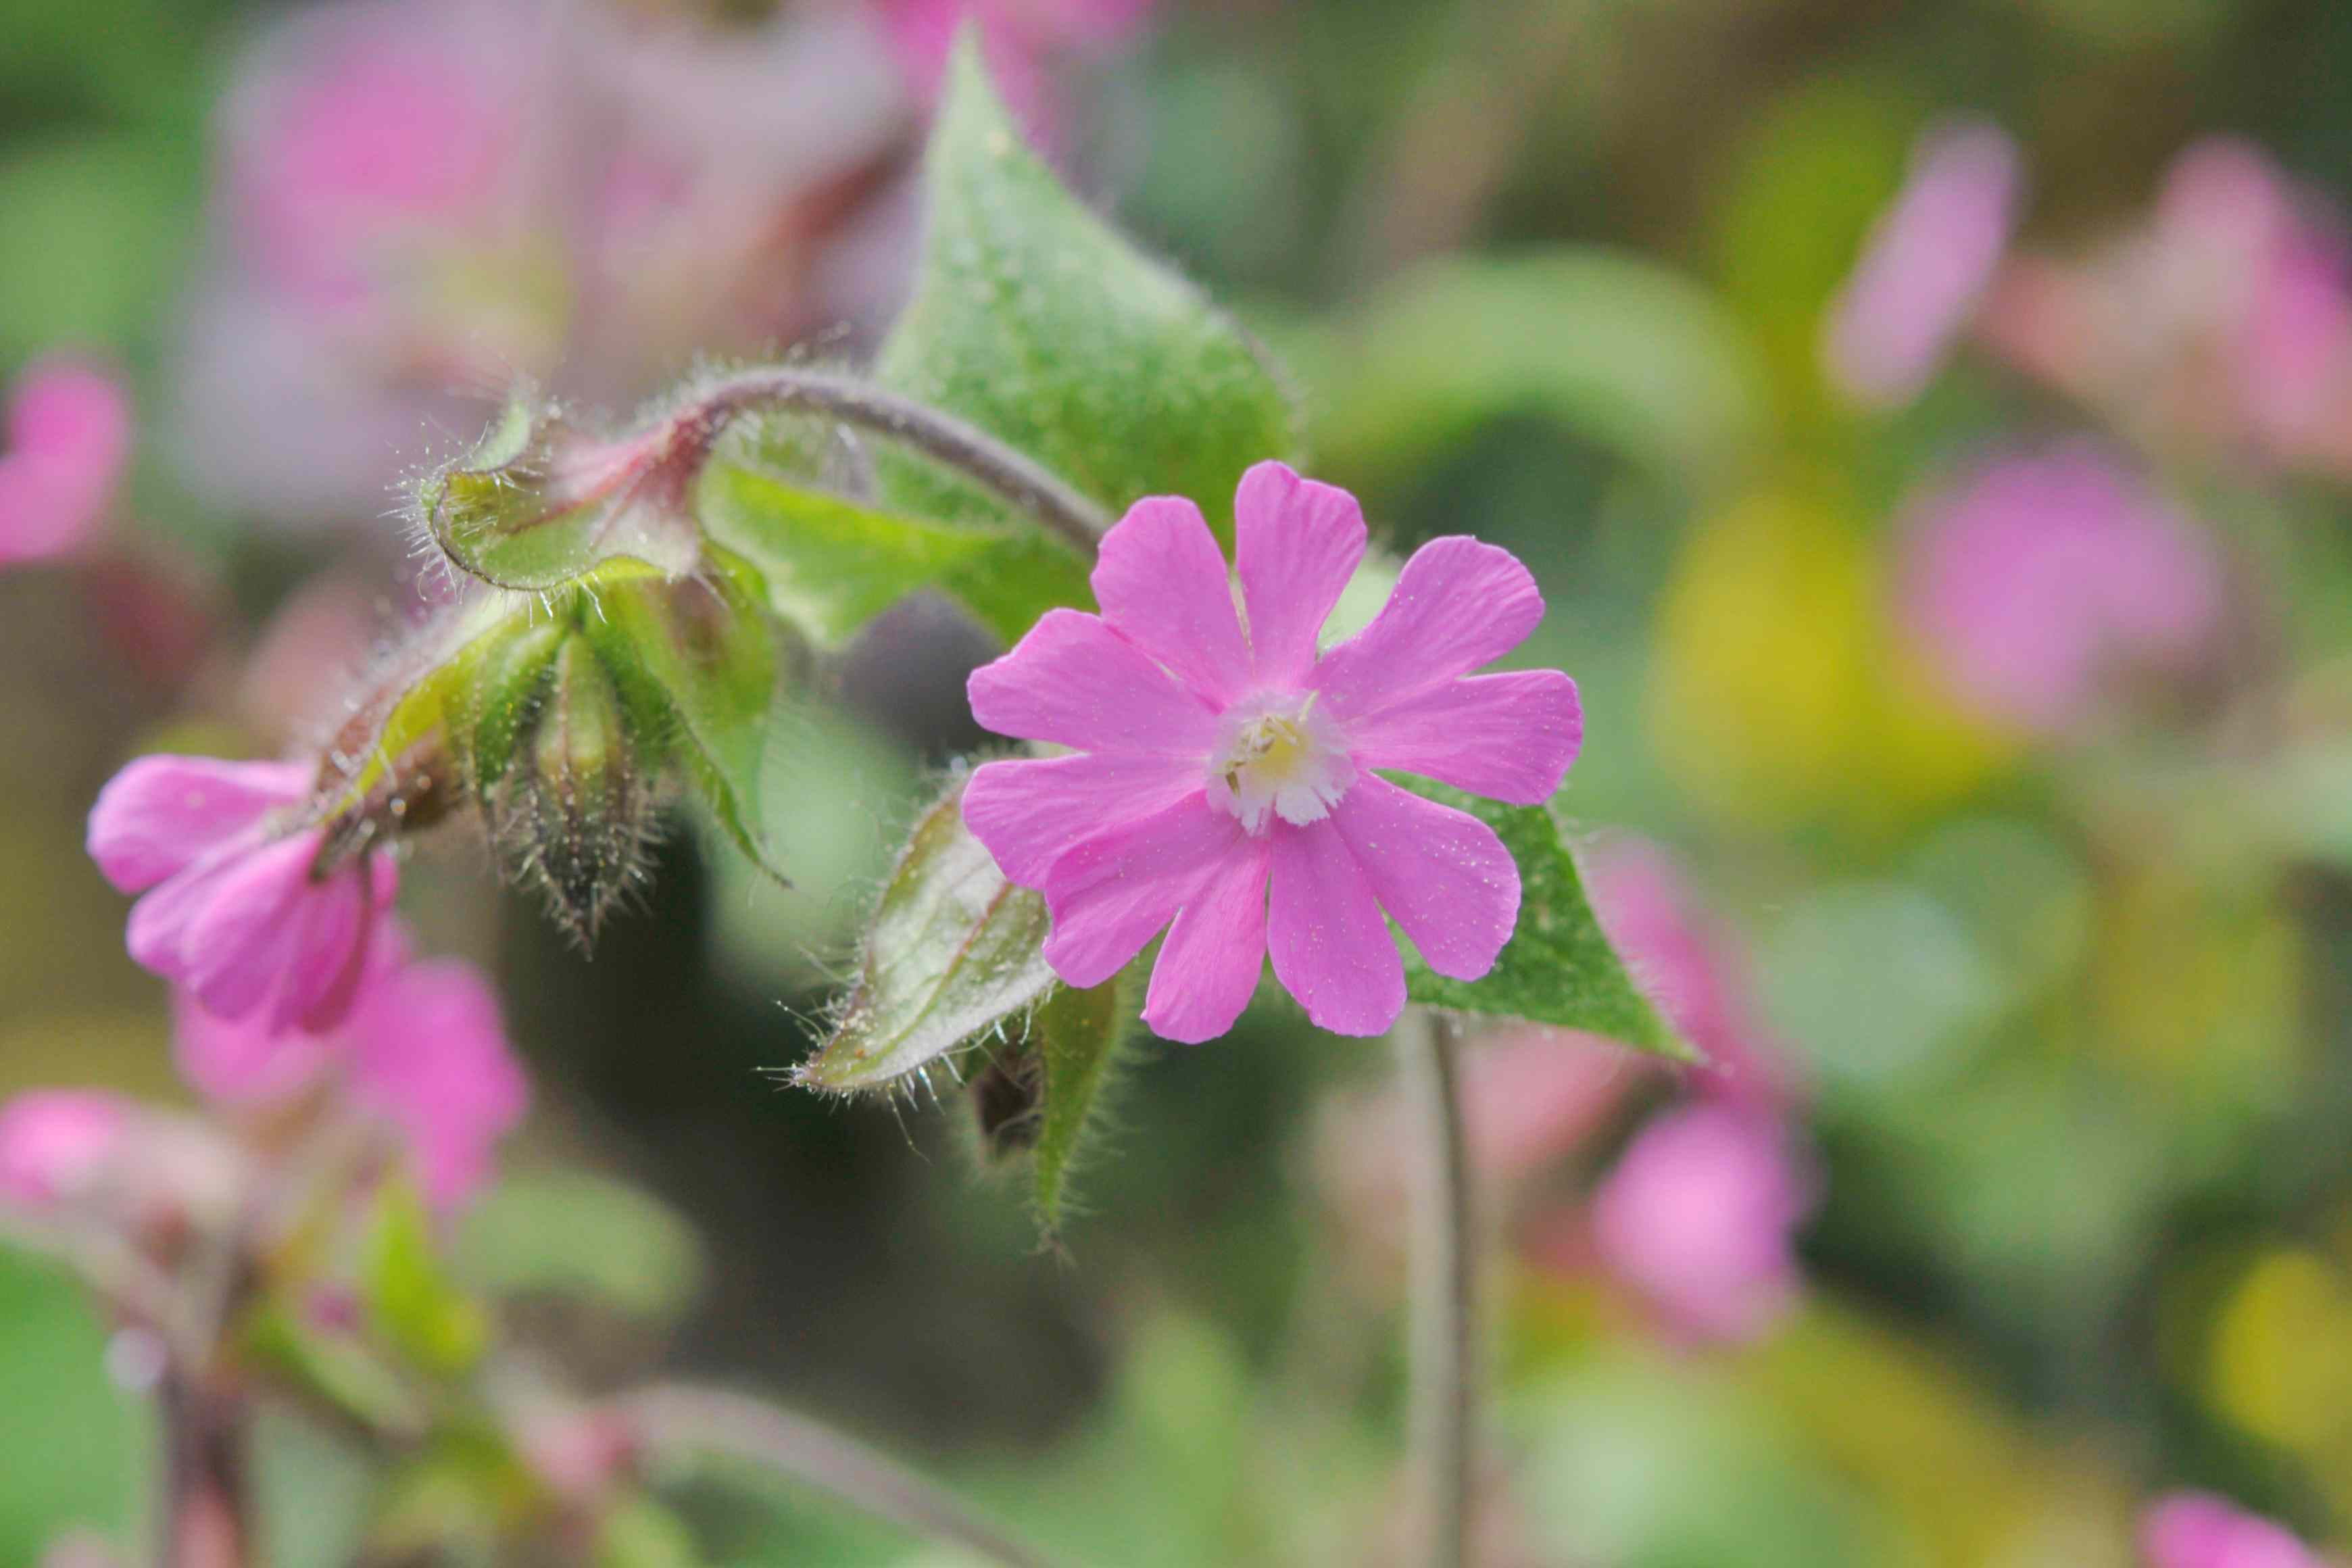 Red campion flower with small pink star-shaped flower and bud on end of thin stem closeup